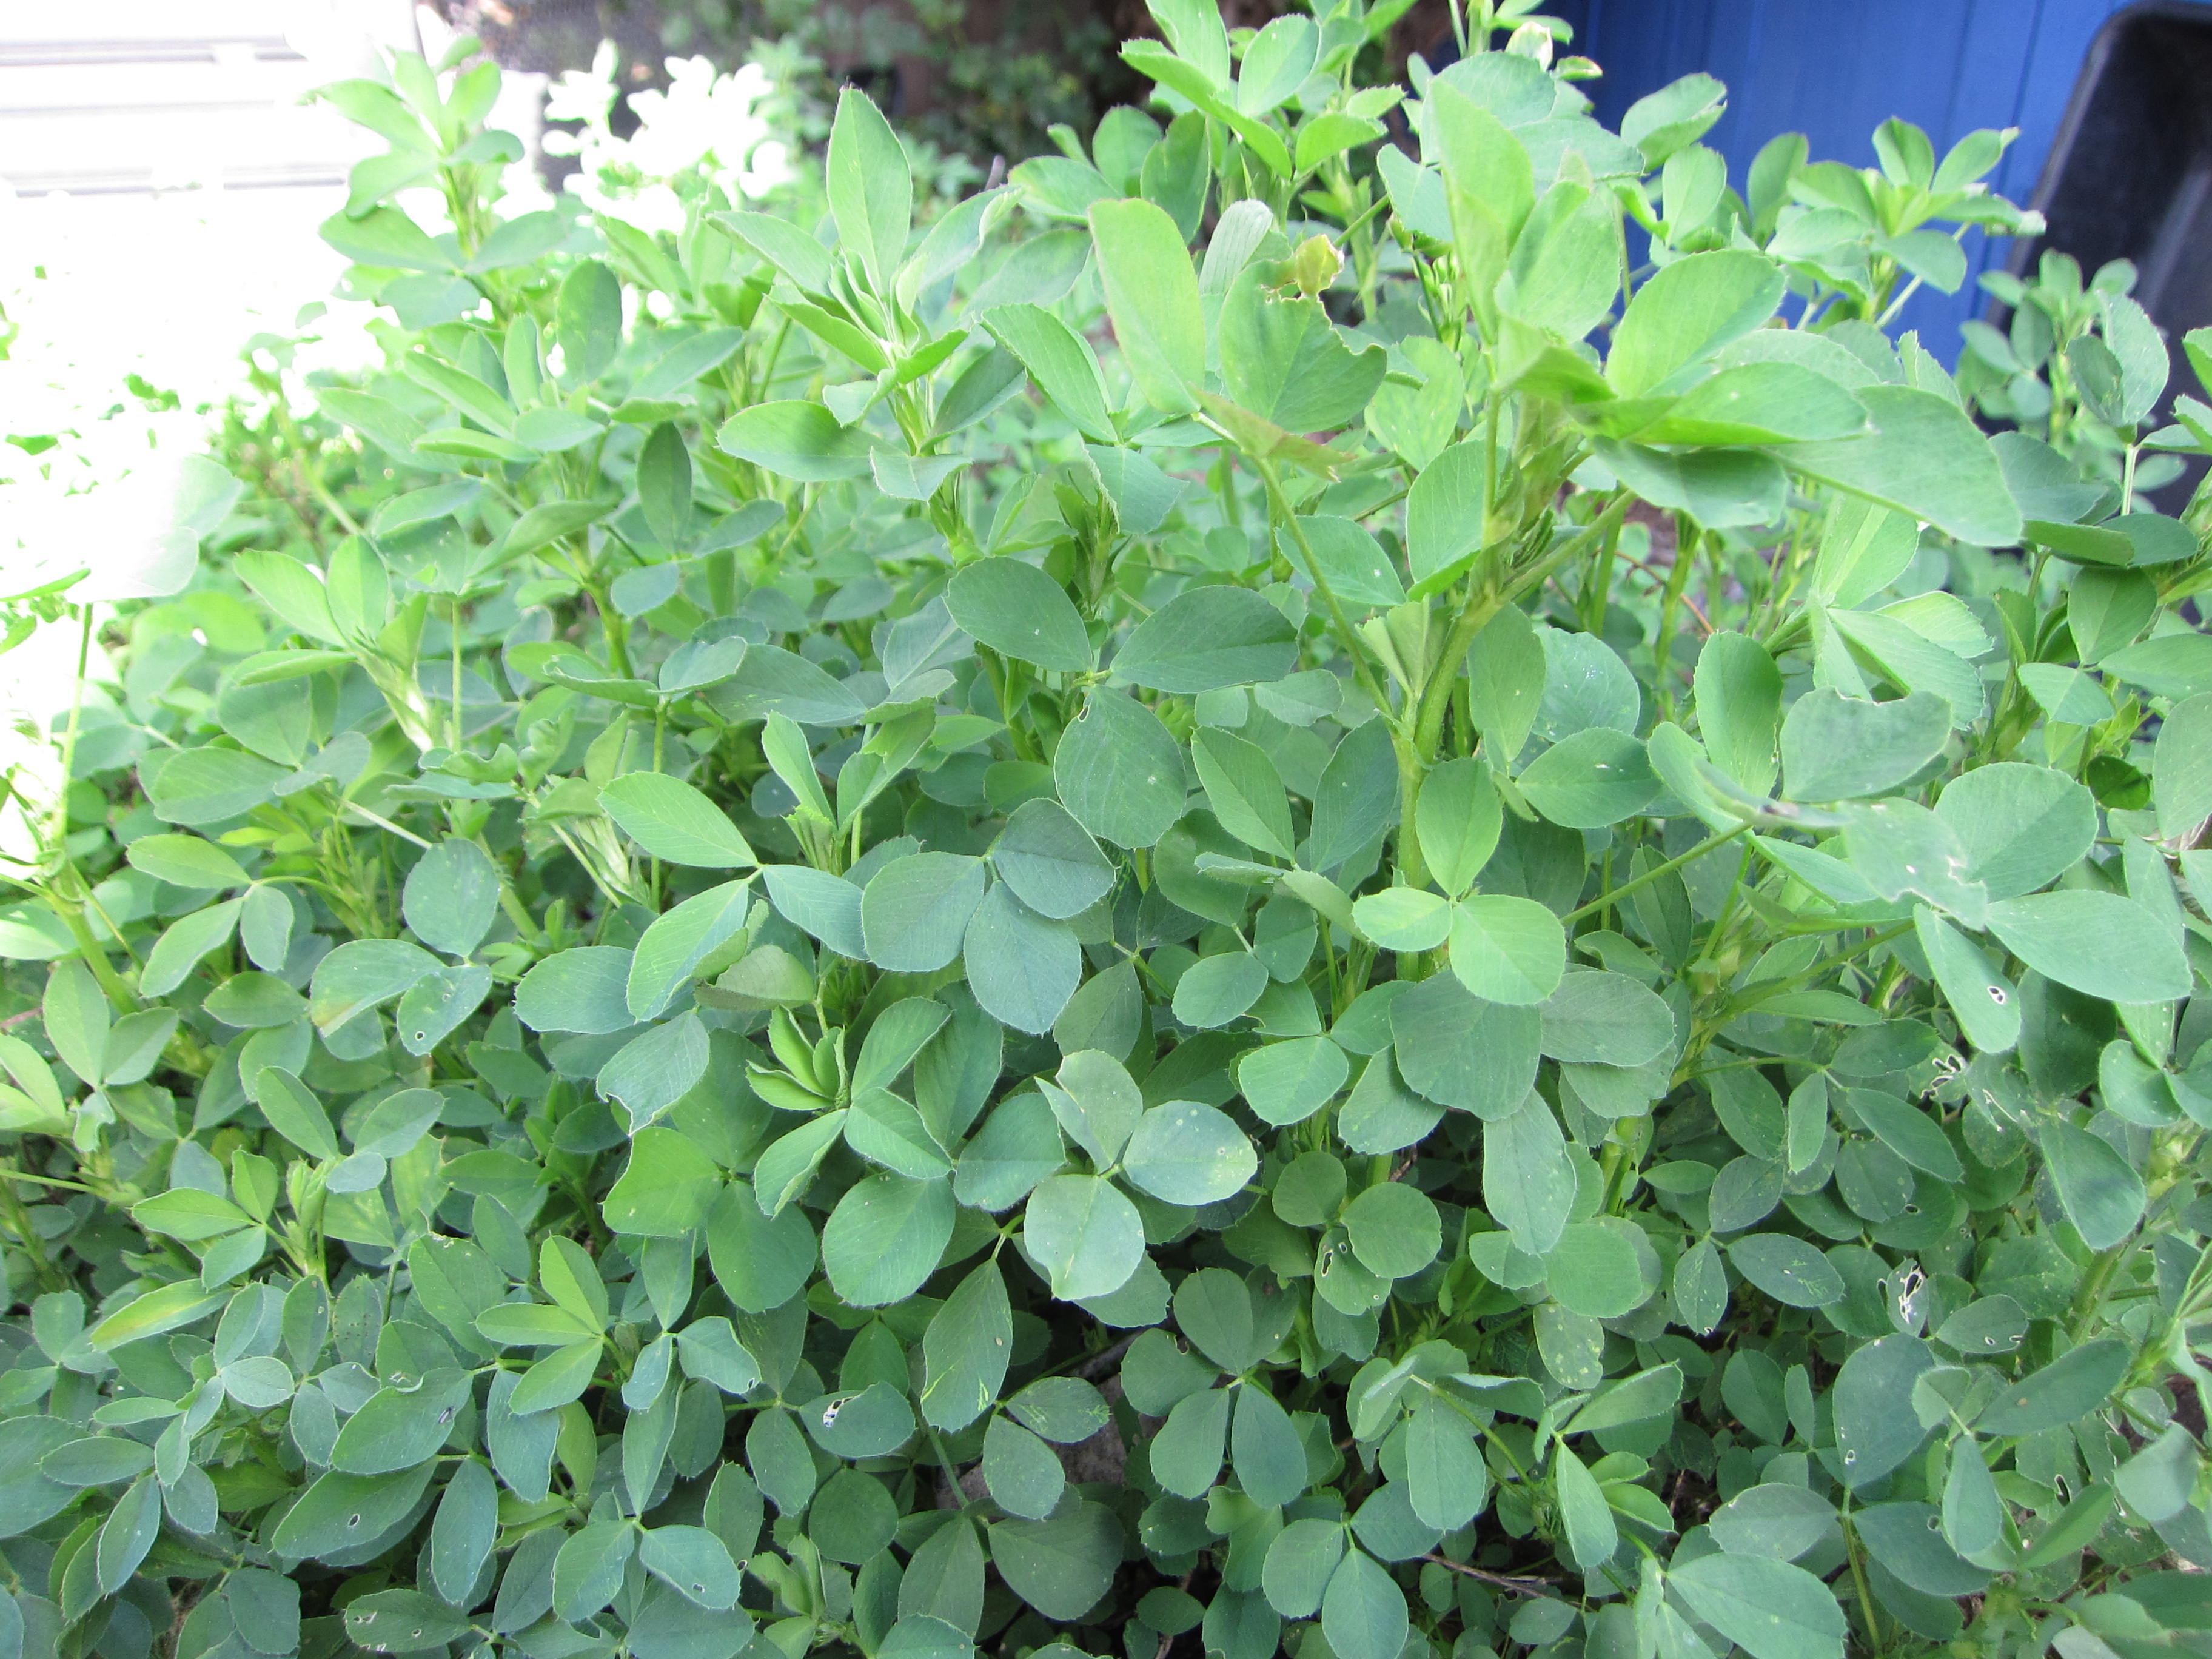 Perennial alfalfa springs to life again after a winter of dormancy. We use this as a high-nitrogen ingredient in compost piles.